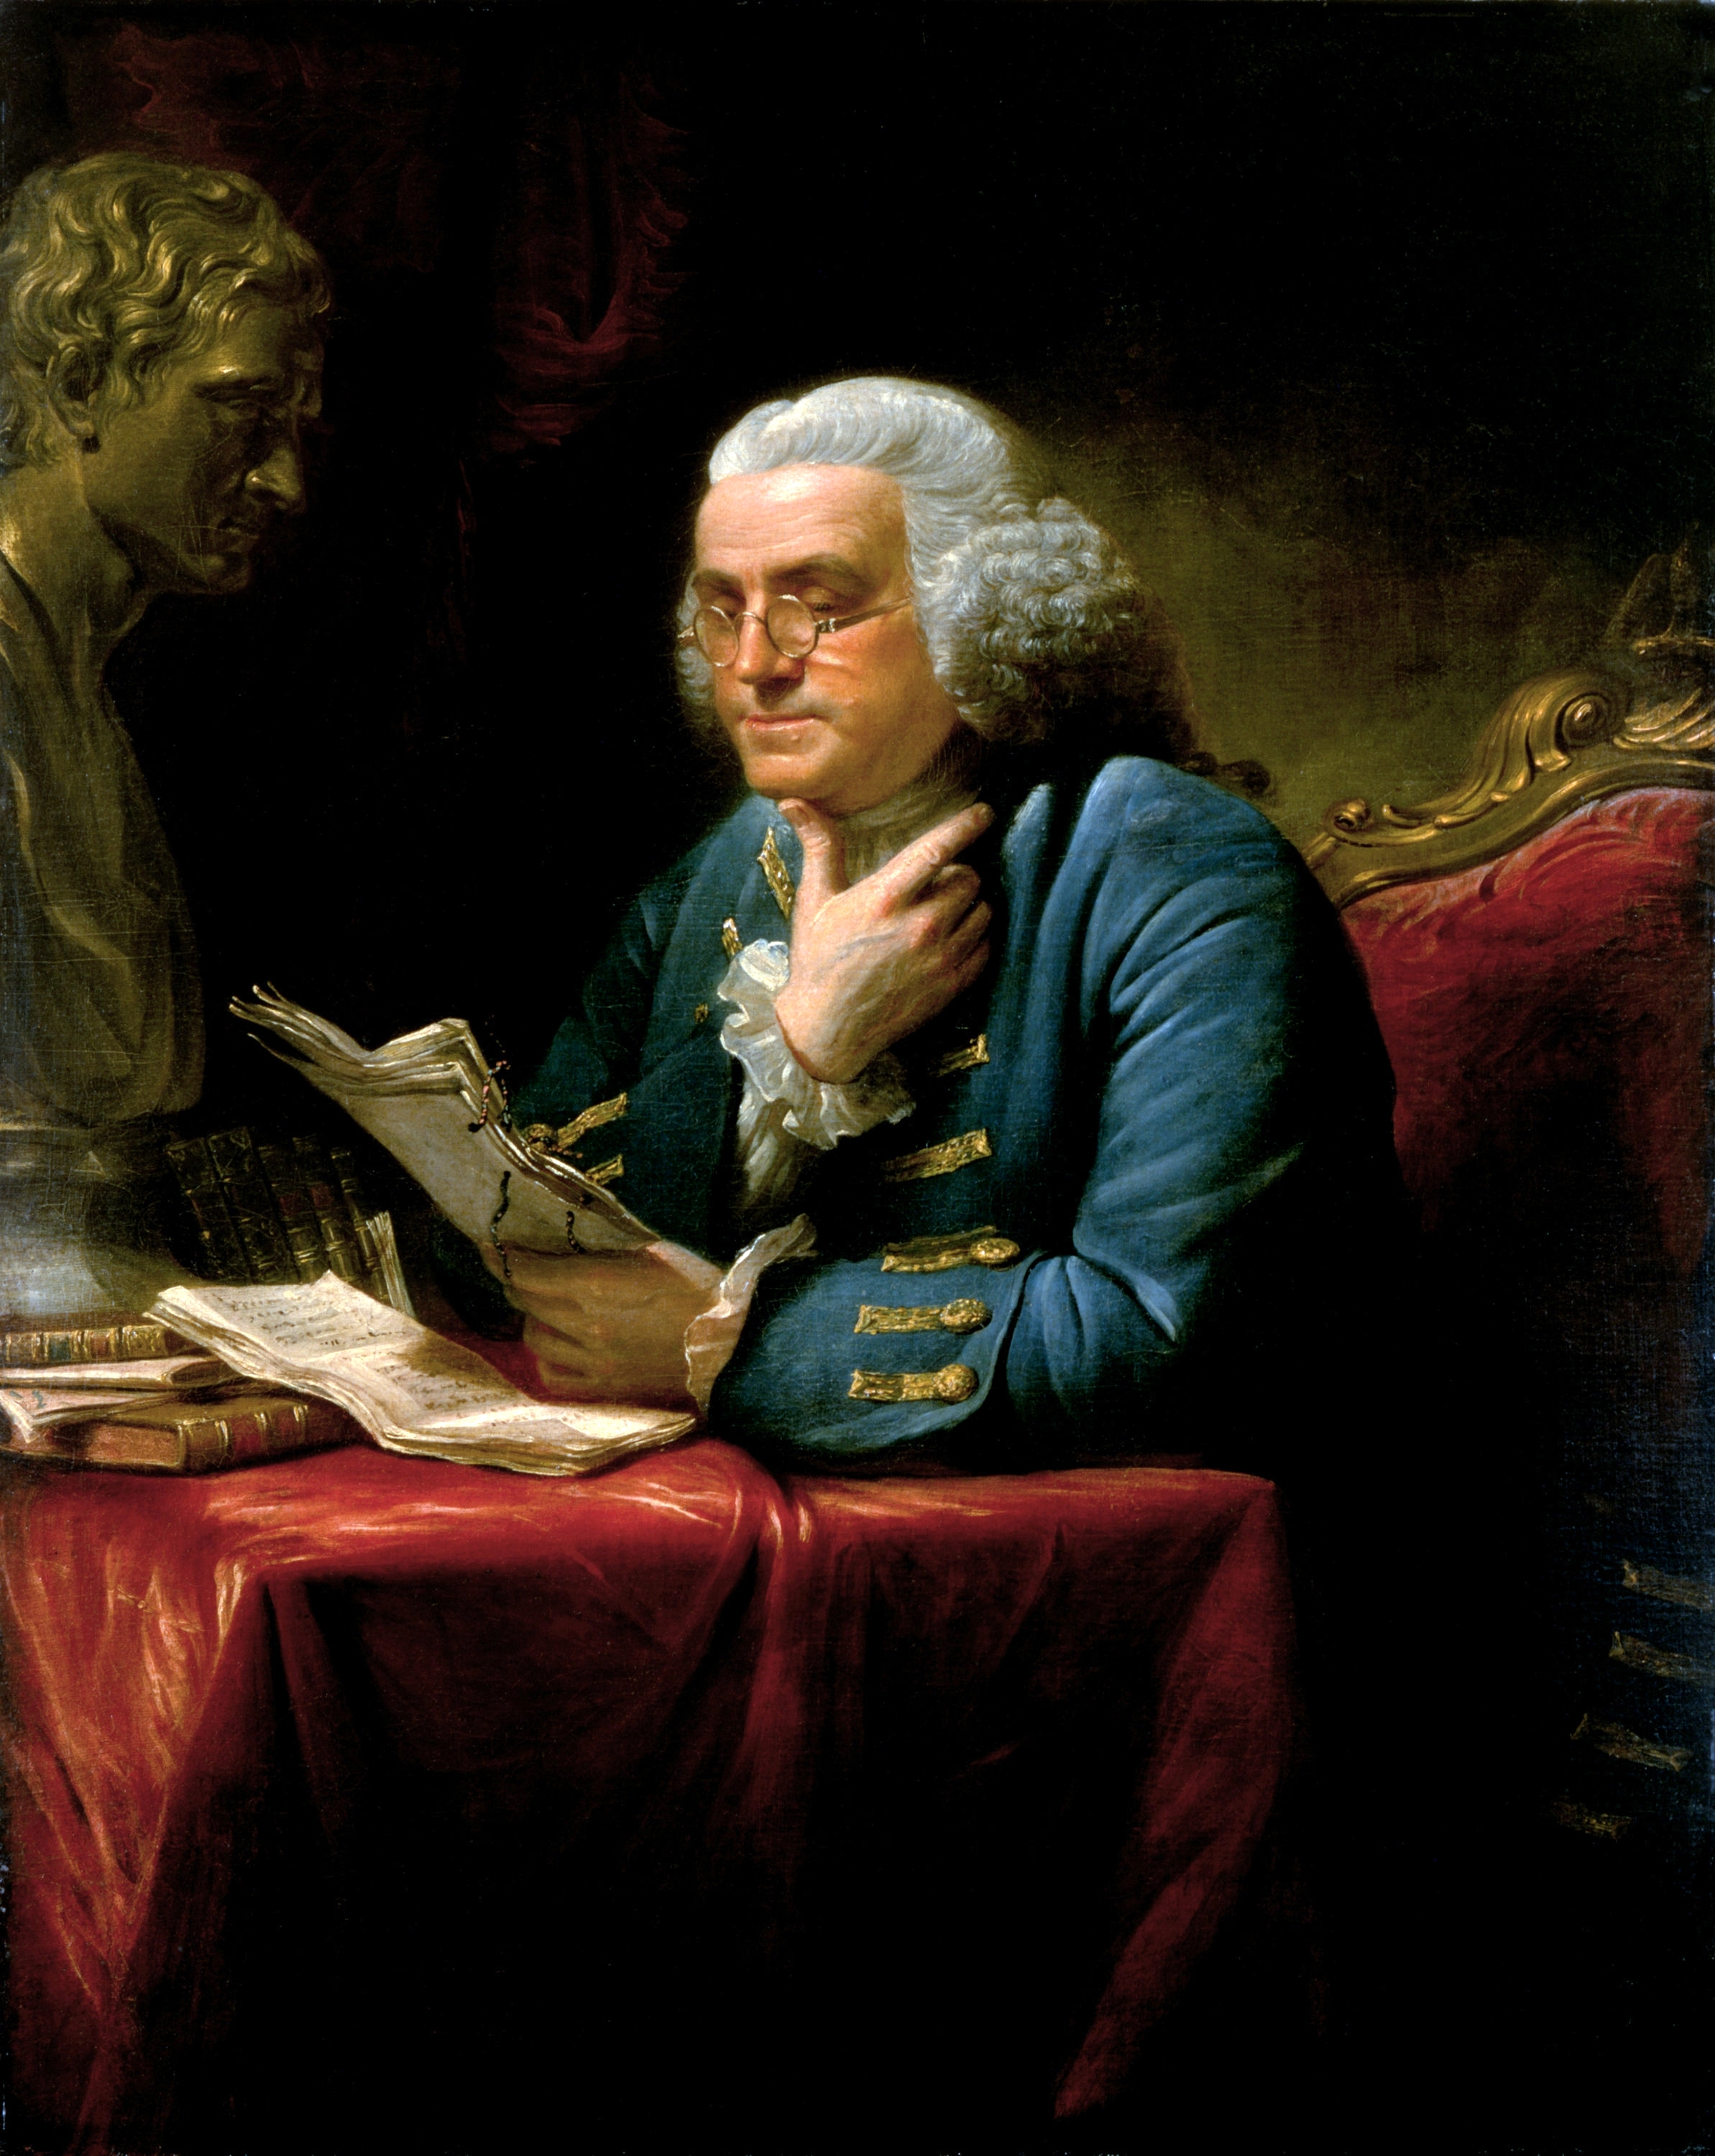 an introduction to the life of benjamin franklin the president of the united states Benjamin franklin: politician and documents of the united states and understand benjamin franklin's contributions an introduction to benjamin franklin and the.